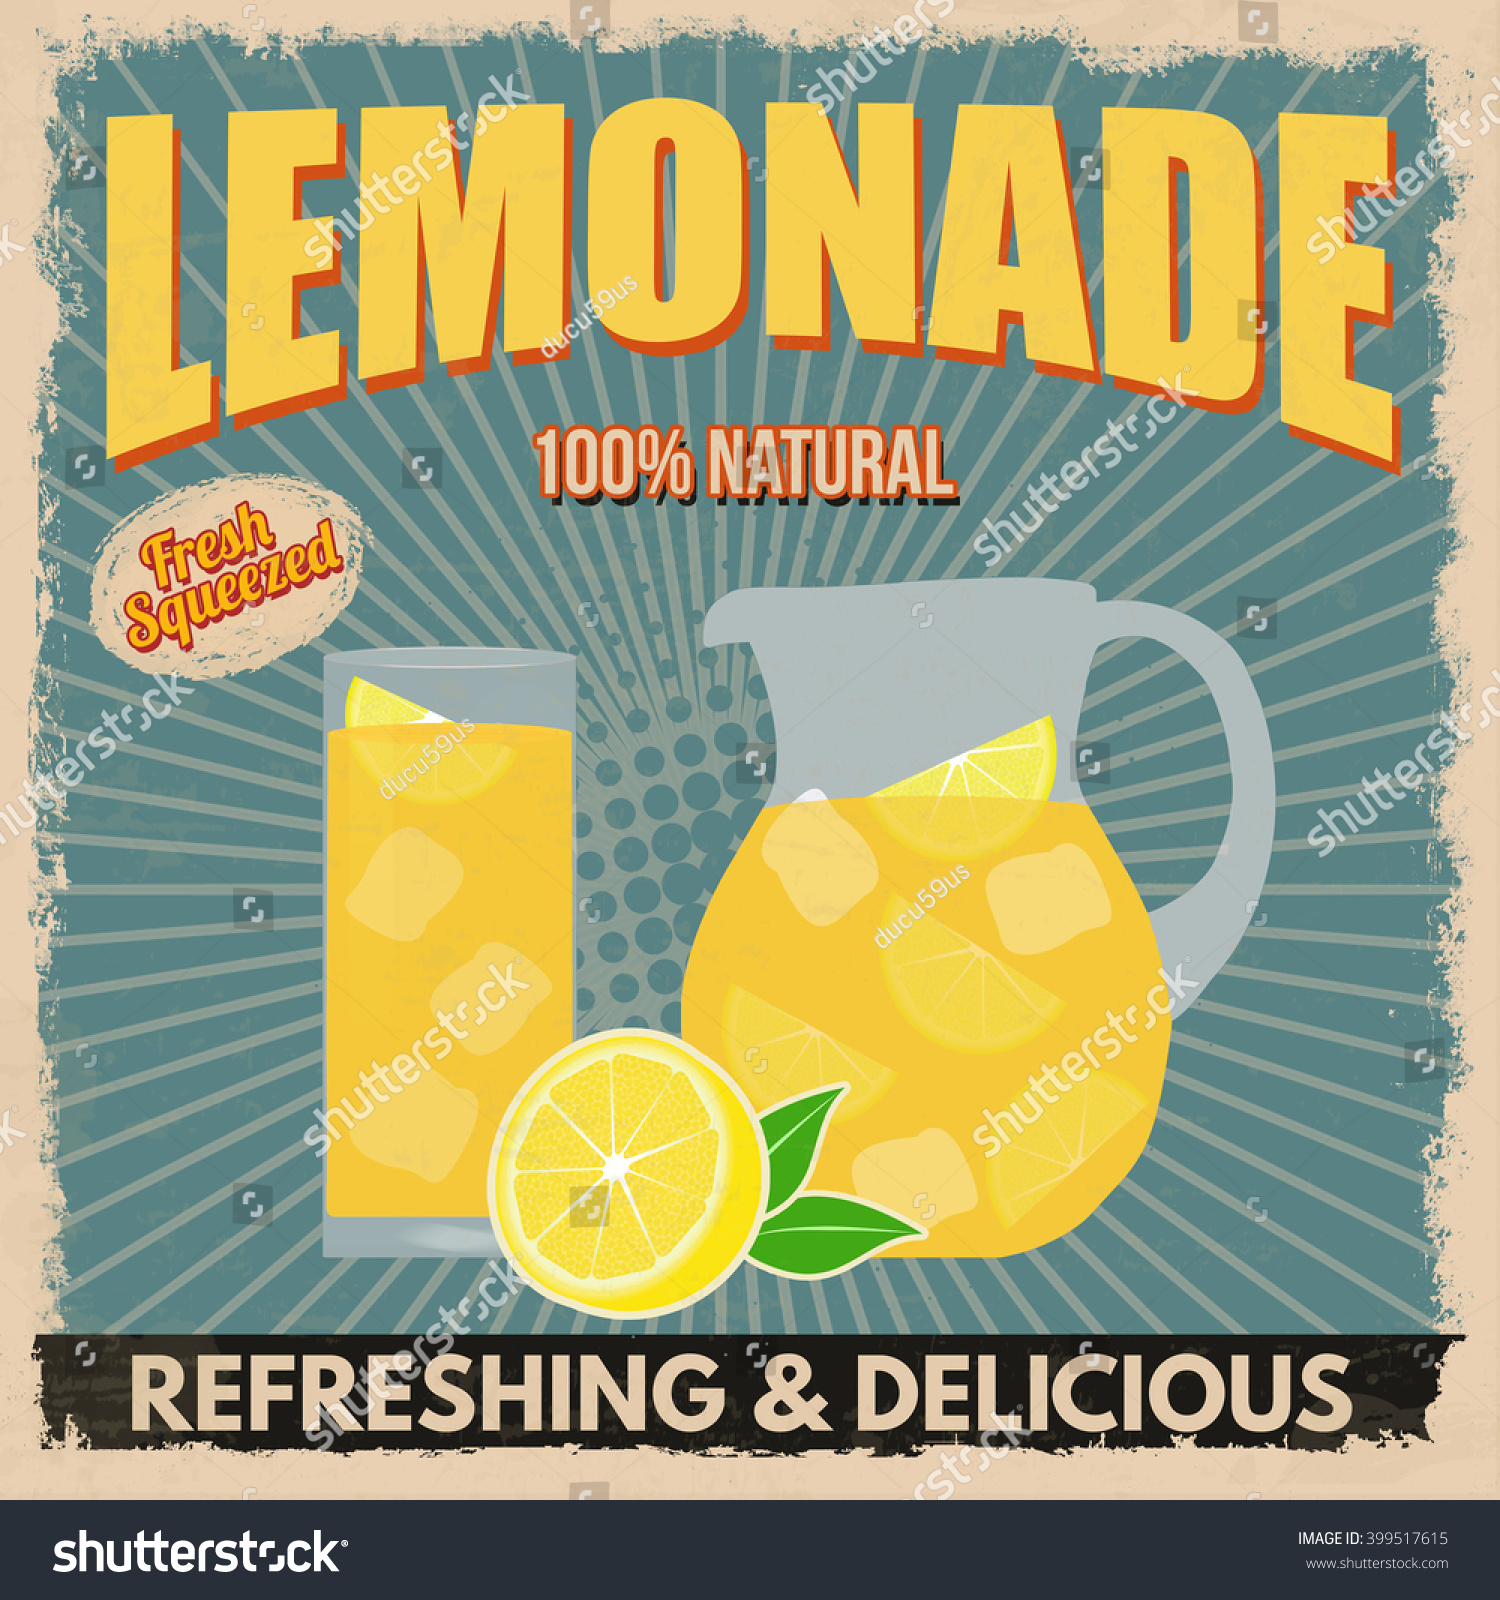 Lemonade Poster Vintage Style On Blue Stock Vector 399517615 ...